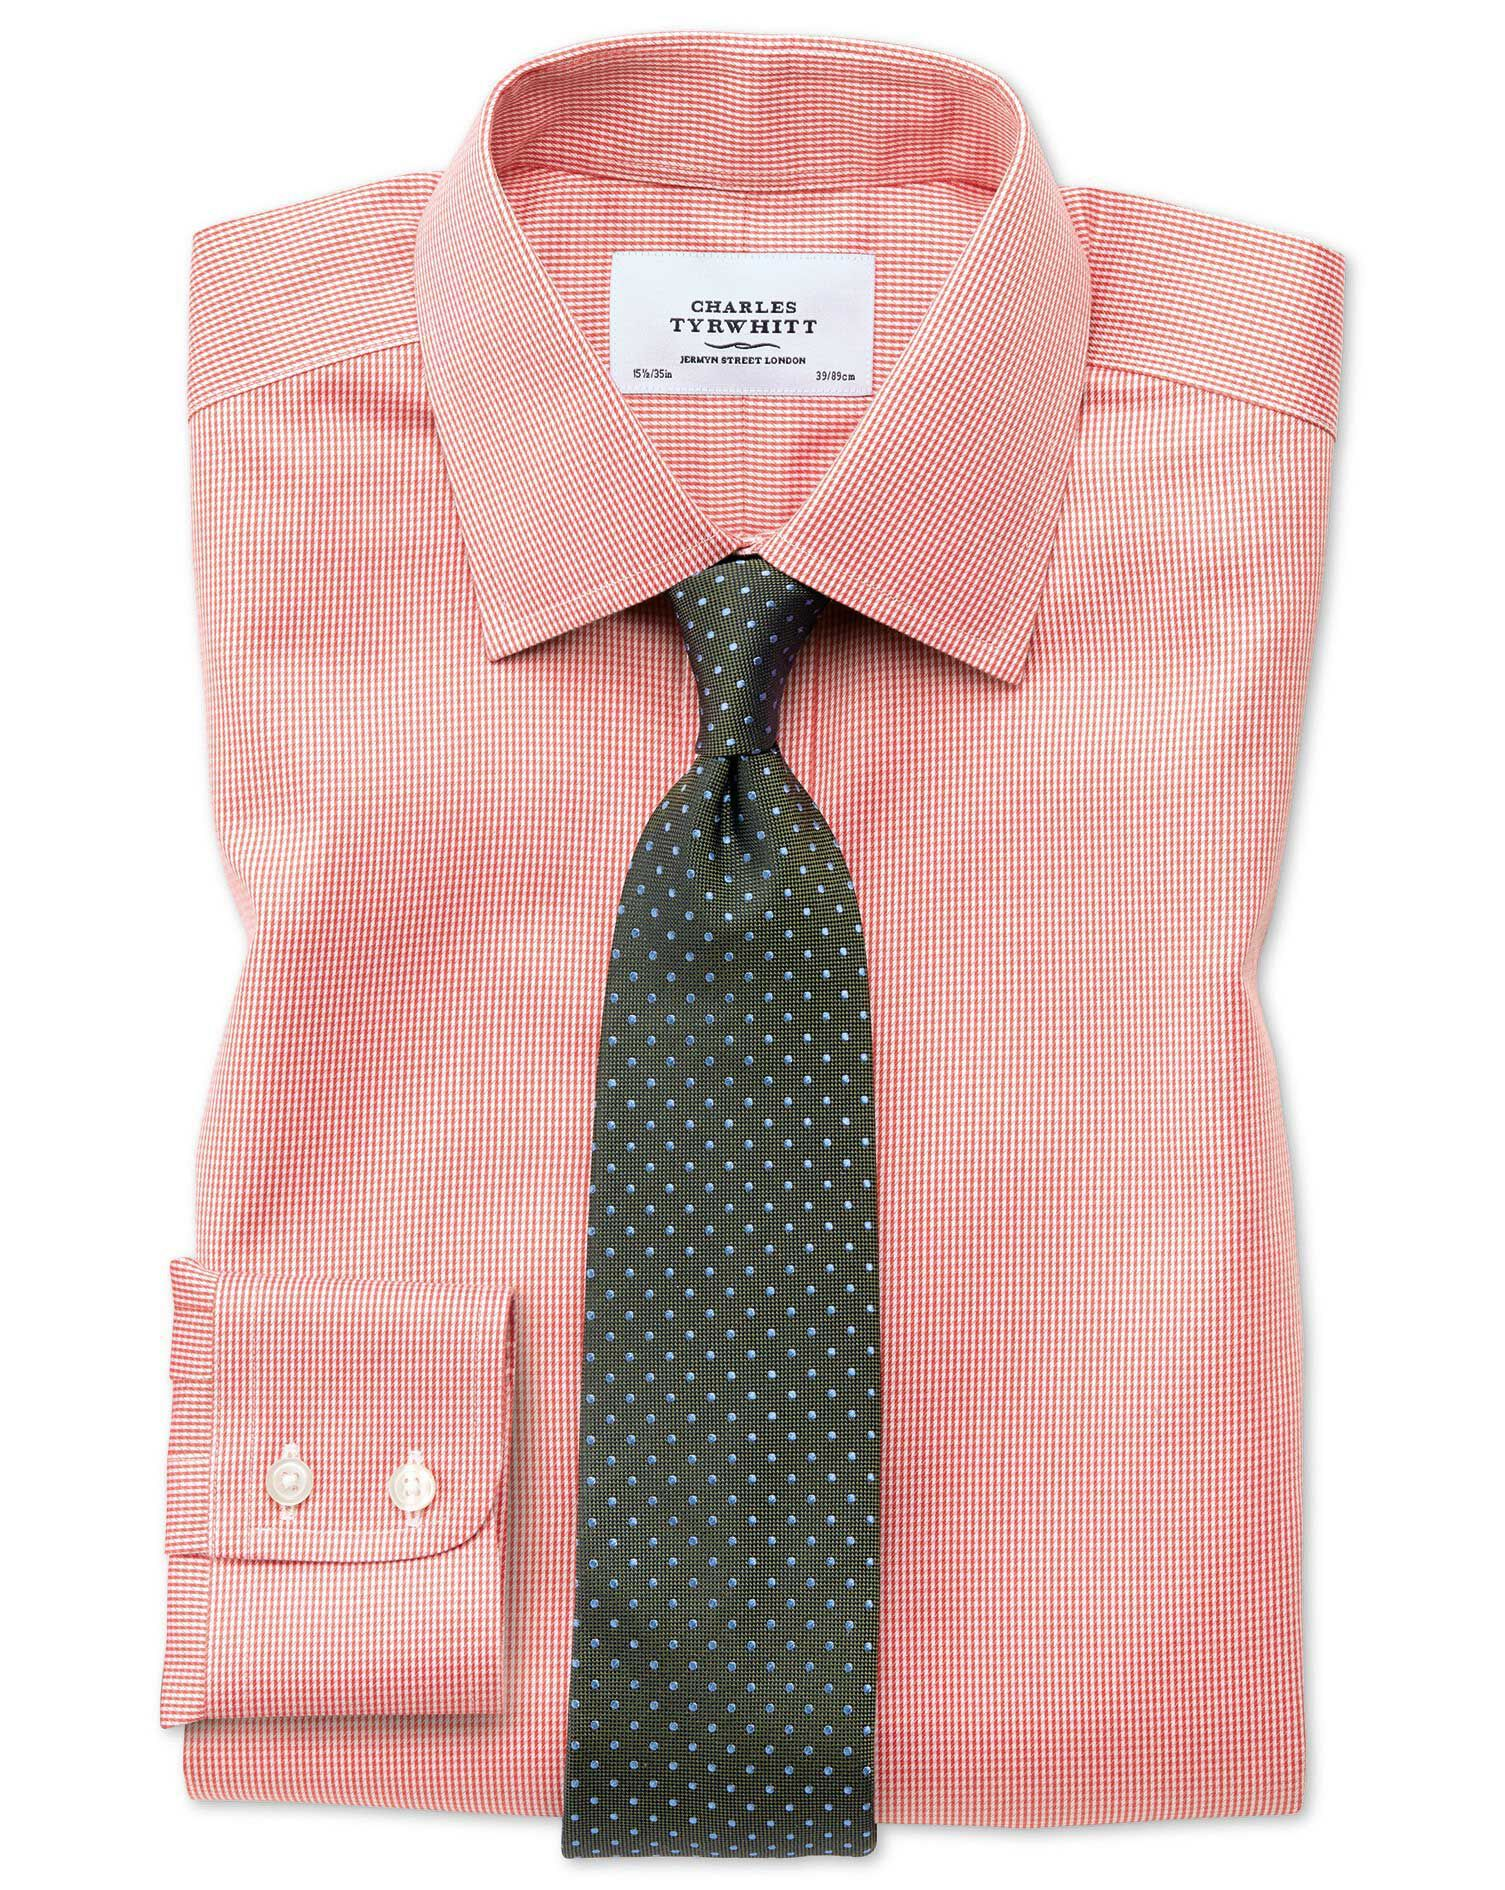 Classic Fit Non-Iron Puppytooth Coral Cotton Formal Shirt Double Cuff Size 17.5/34 by Charles Tyrwhi